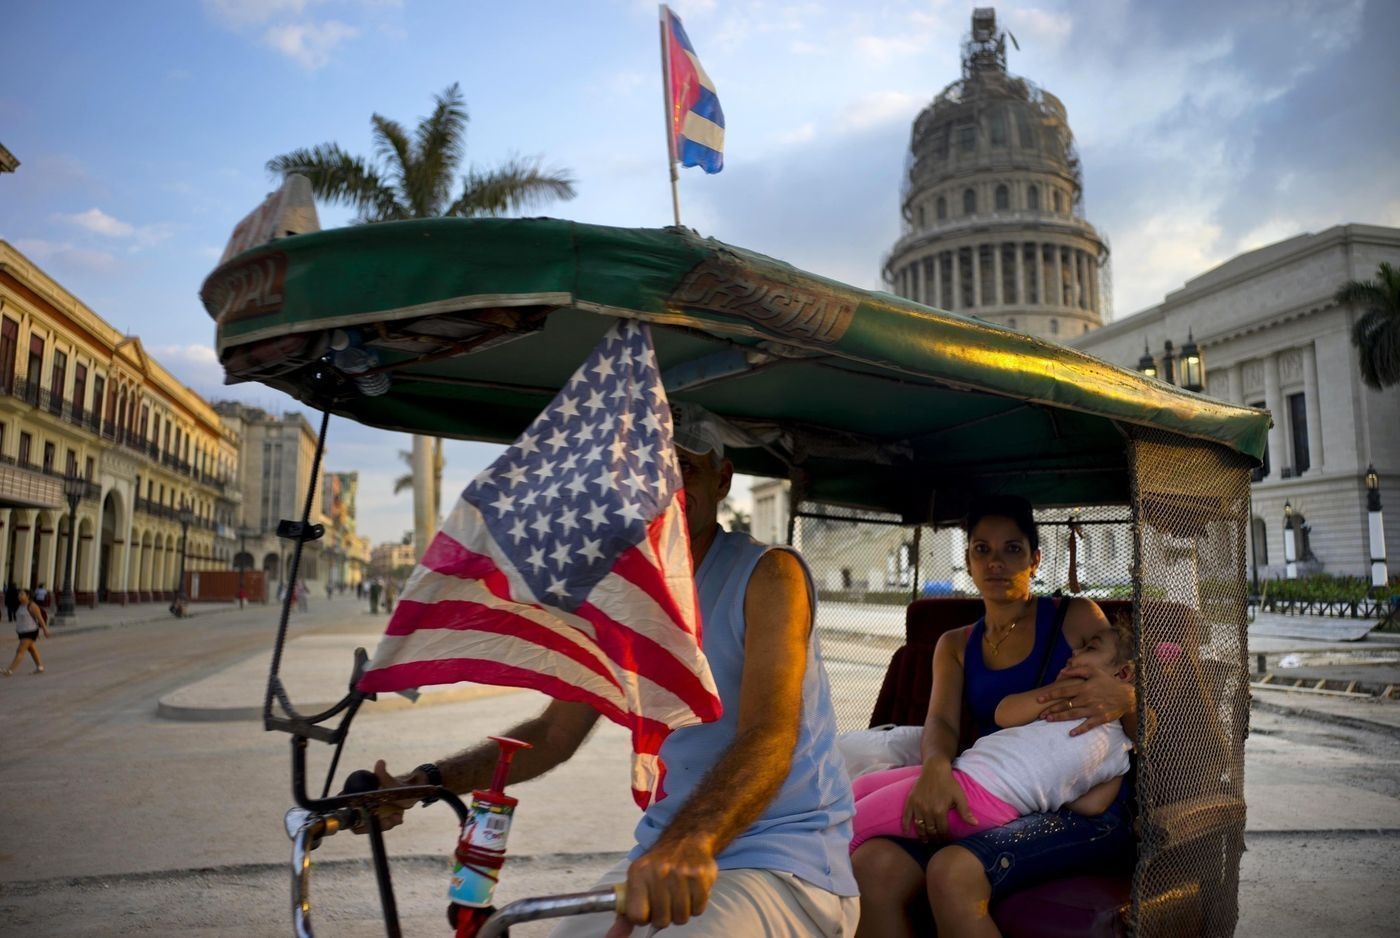 Yes, America, you can still visit Cuba. And the feds have softened their warnings #visitcuba Yes, America, you can still visit Cuba. And the feds have softened their warnings #visitcuba Yes, America, you can still visit Cuba. And the feds have softened their warnings #visitcuba Yes, America, you can still visit Cuba. And the feds have softened their warnings #visitcuba Yes, America, you can still visit Cuba. And the feds have softened their warnings #visitcuba Yes, America, you can still visit C #visitcuba